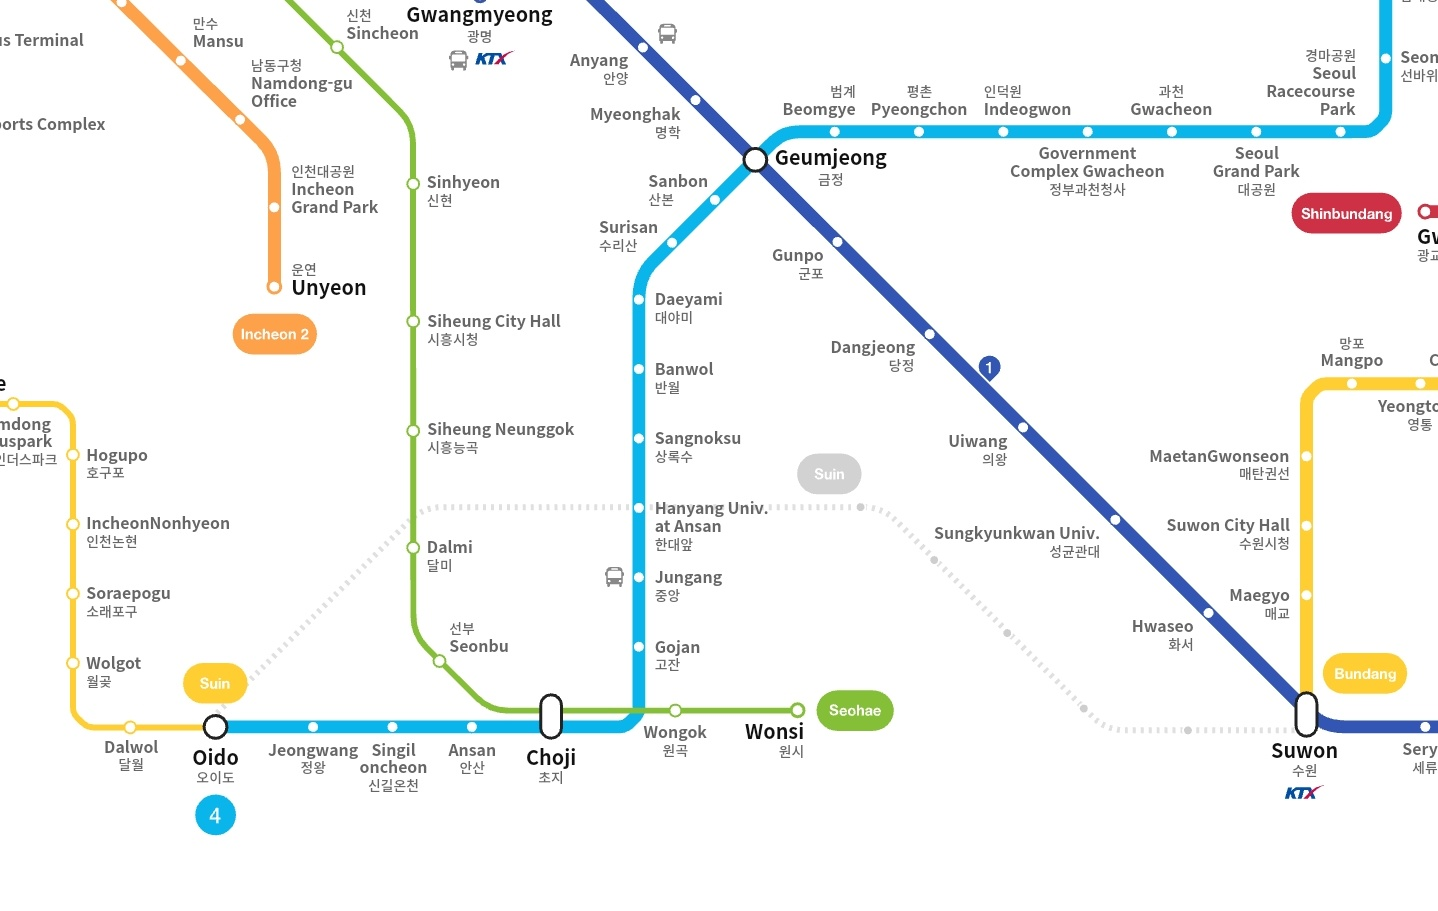 Suwon Subway Map.Kojects On Twitter Seoul Will Extend The Following Subway Lines In 2020 Adding Over 40 Km Of Rail Line 5 Towards Hanam Line 7 For Two Stations Incheon Subway